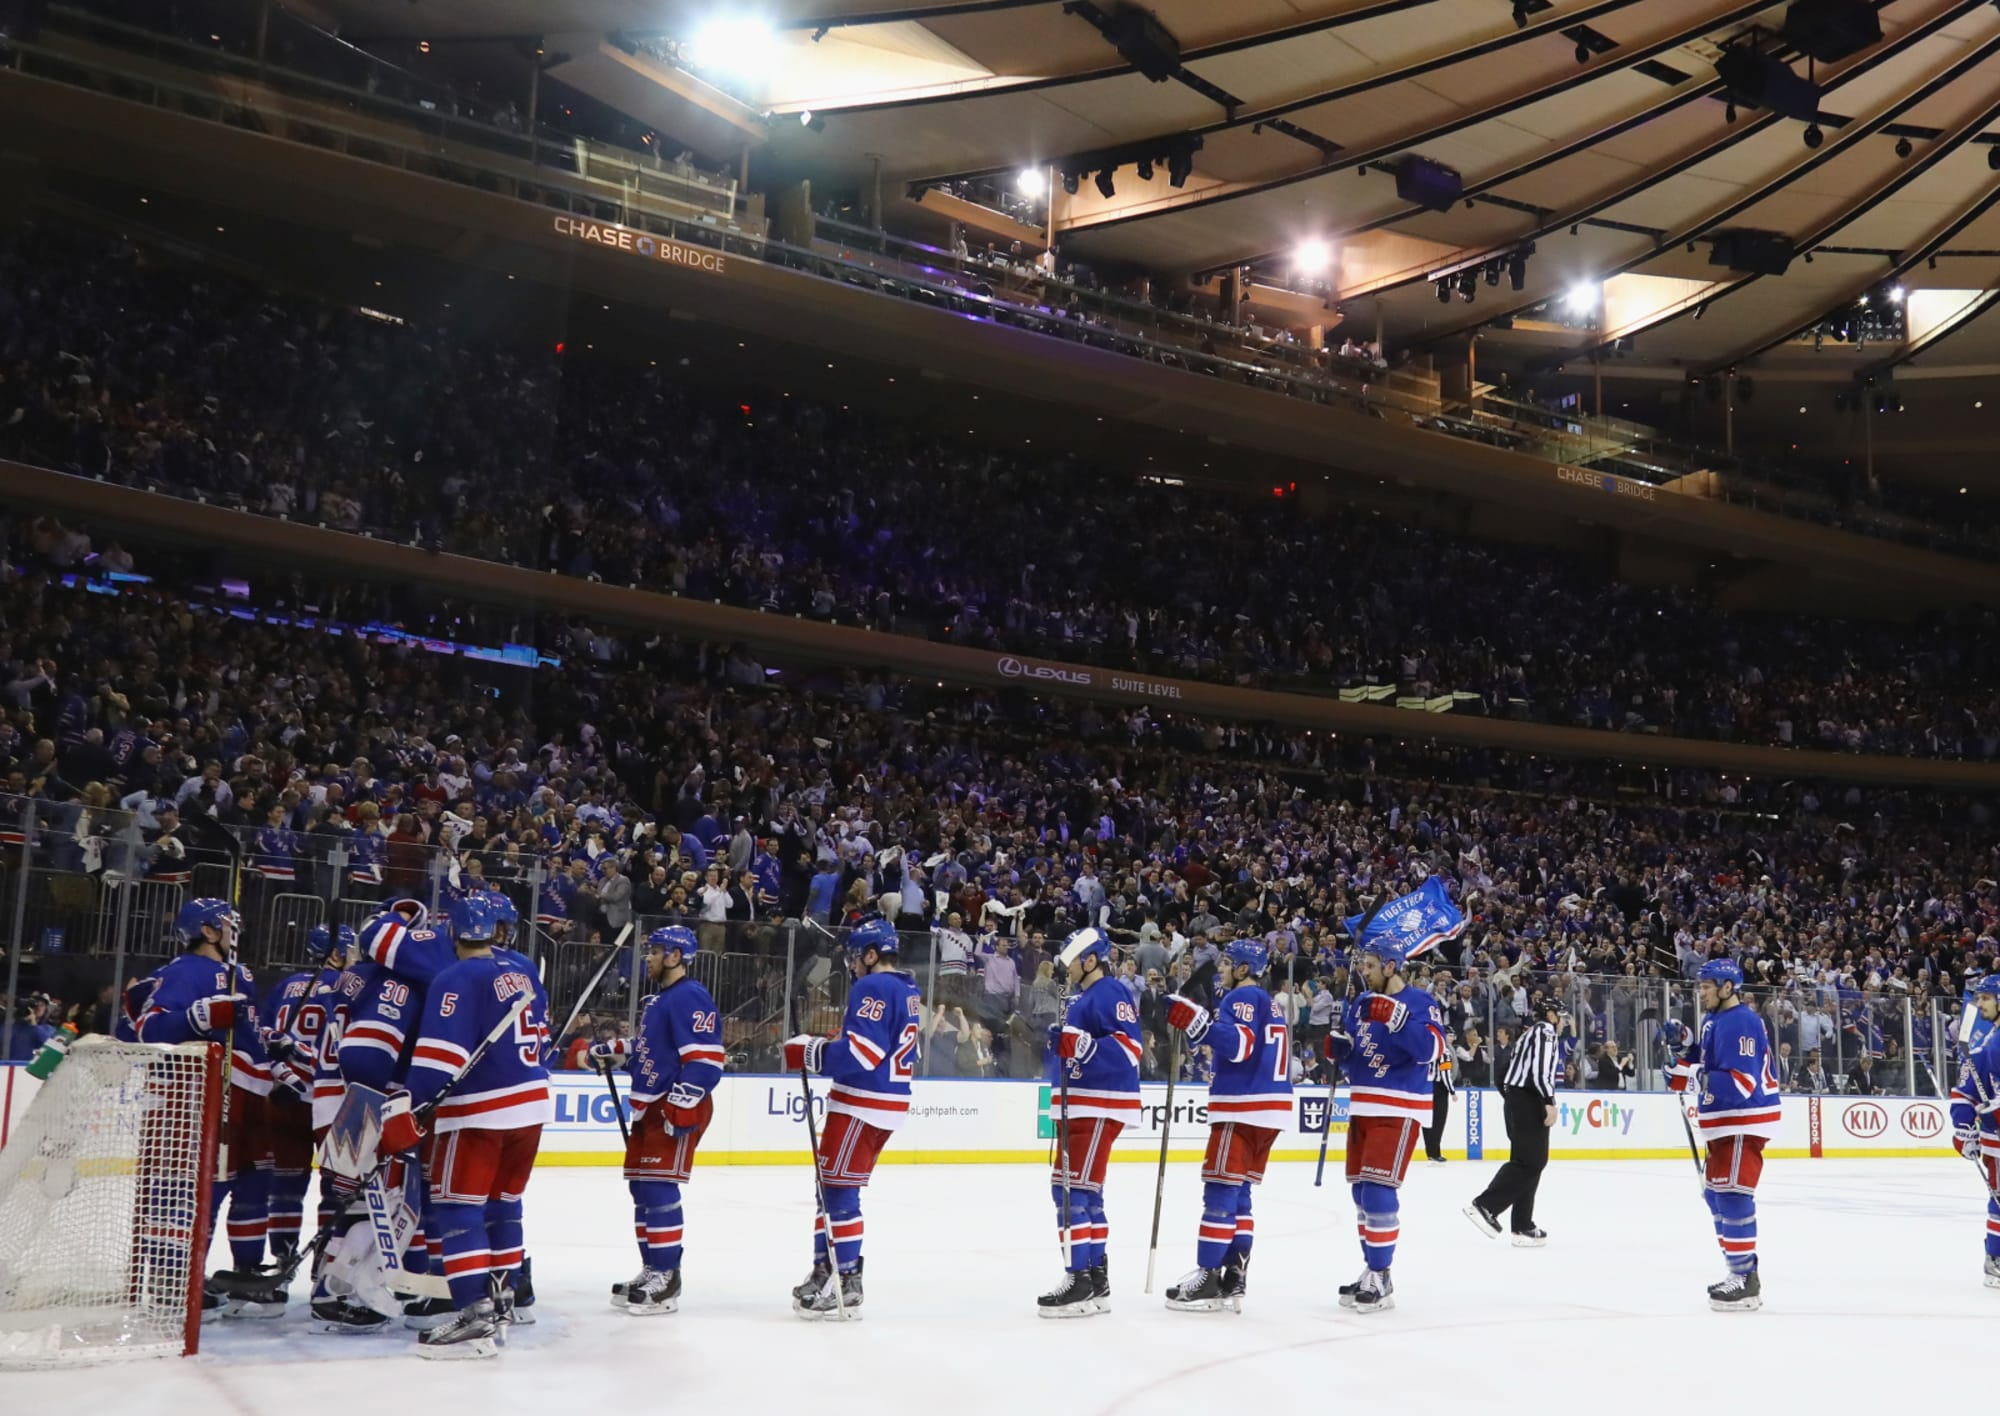 The key to the Rangers winning a best-of-five series